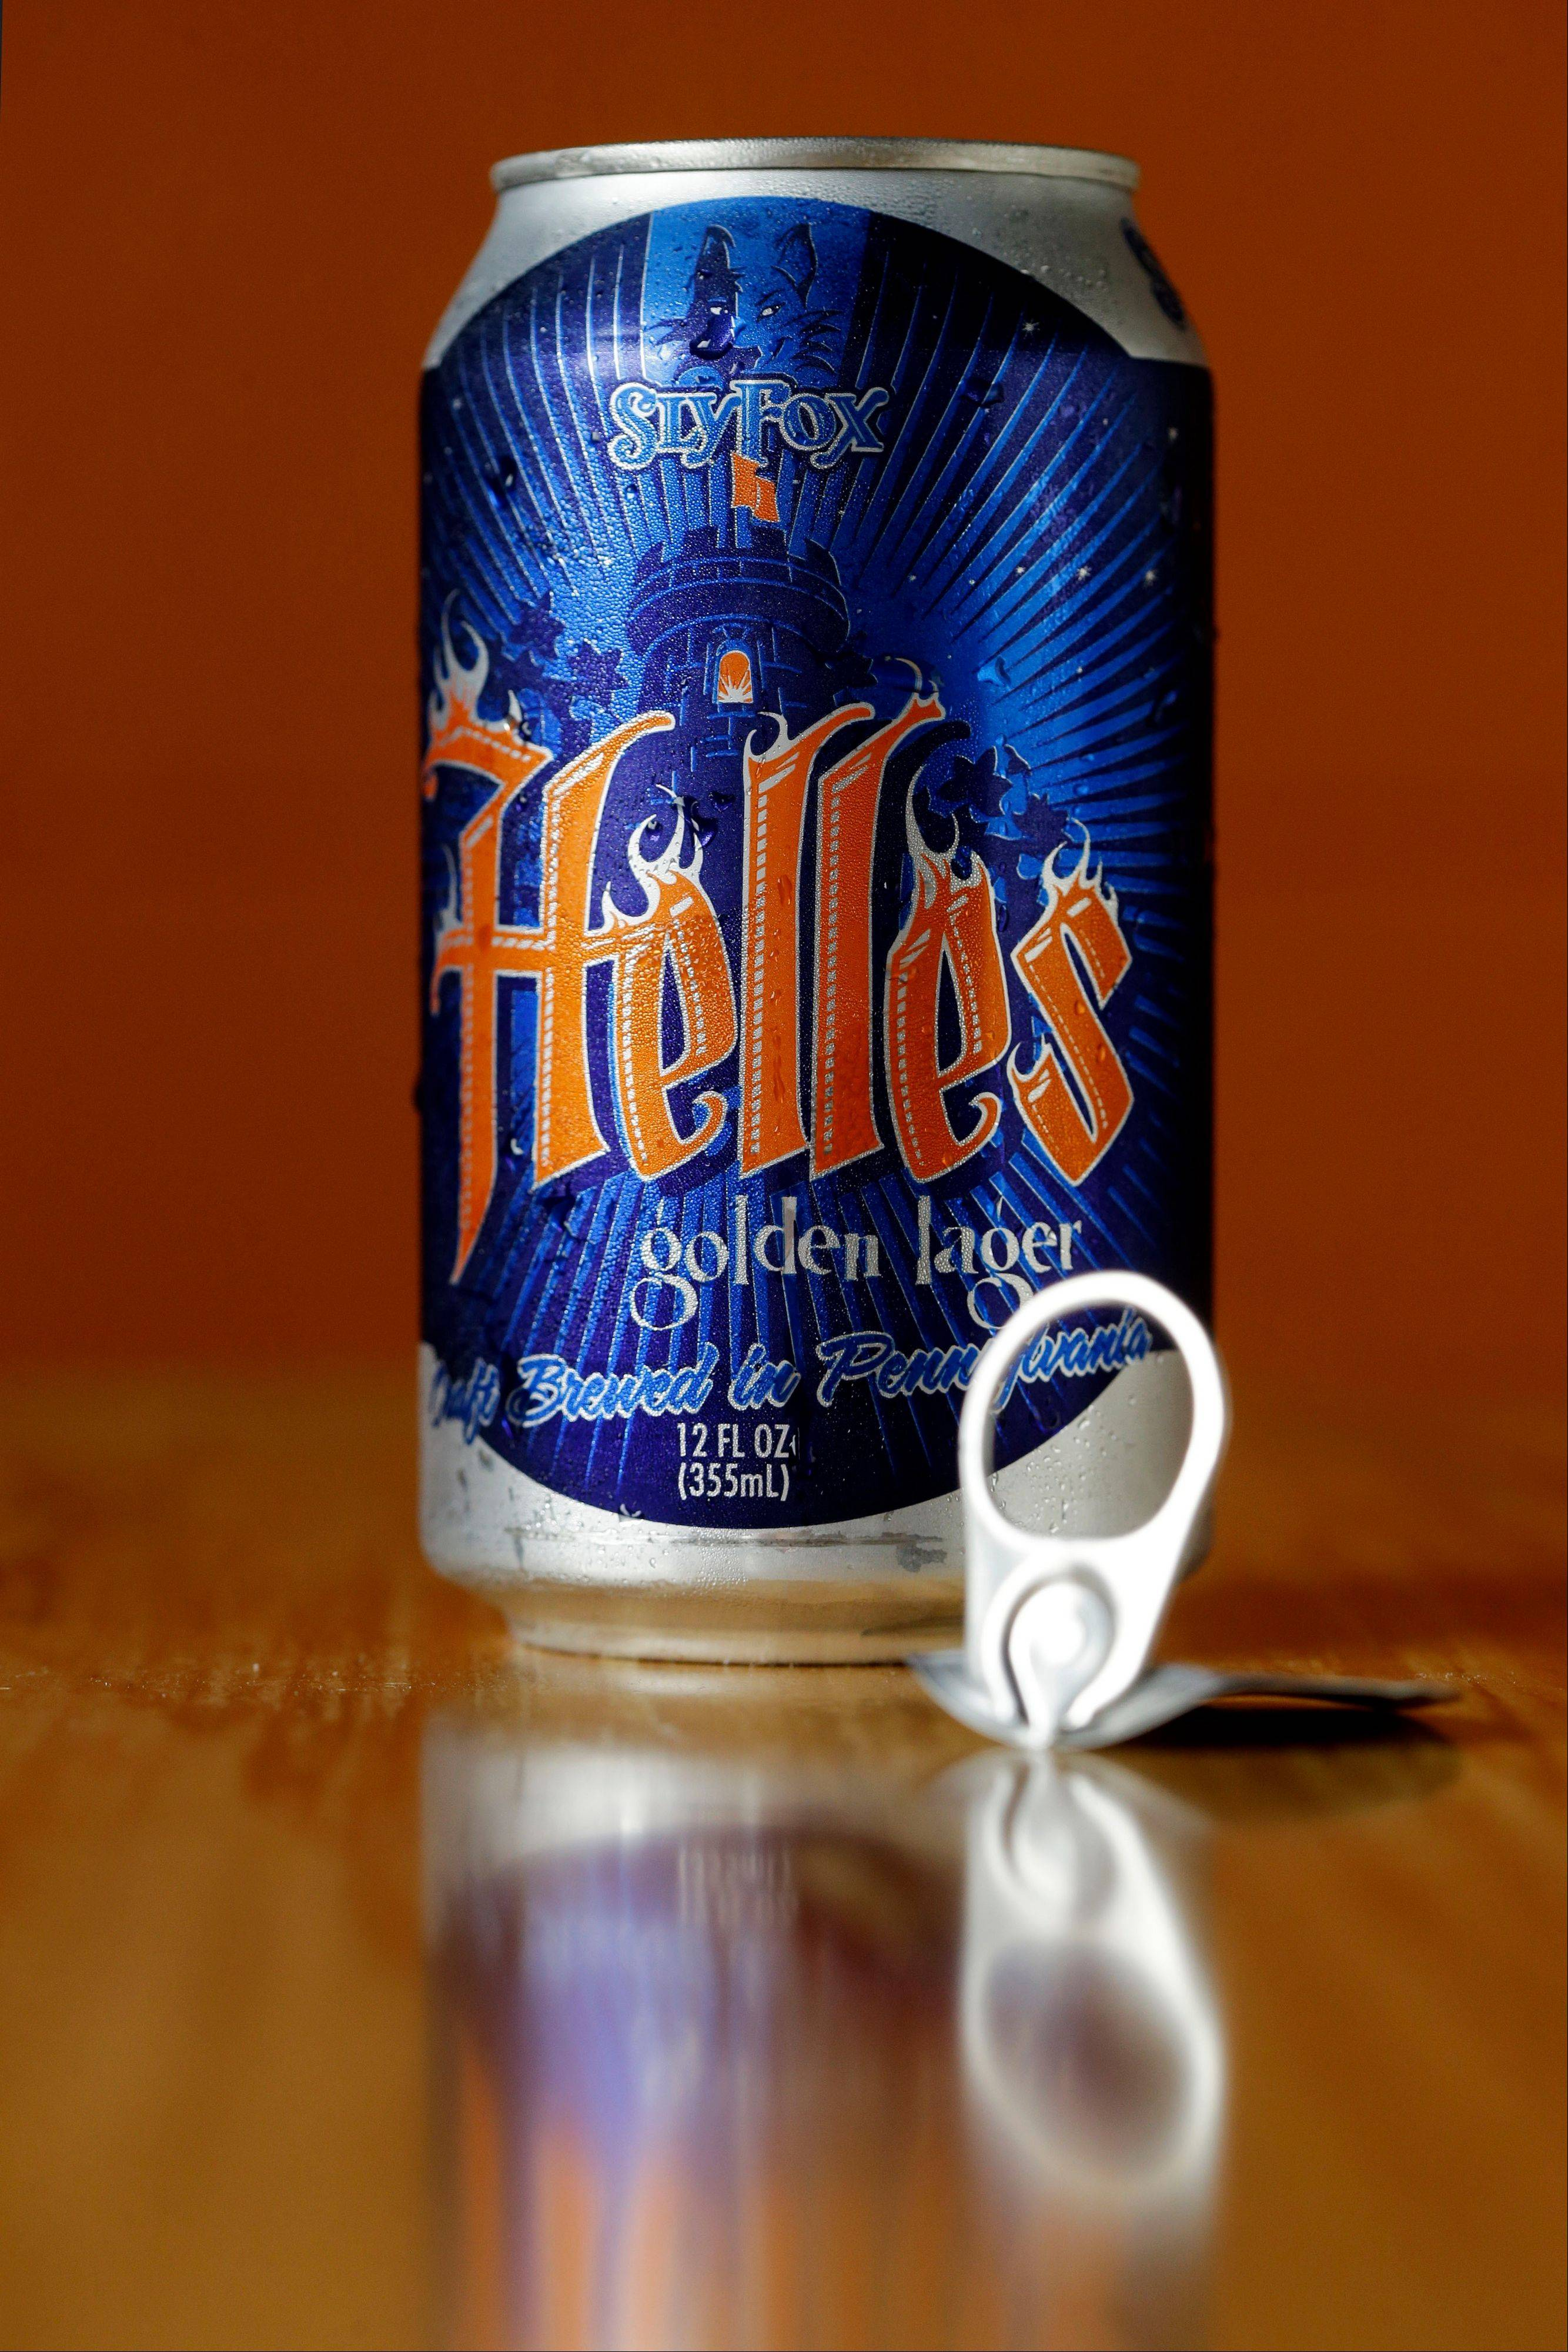 Helles Golden Lager from Sly Fox Brewing Company in Pottstown, Pa., is among the 1,000 craft beers now available in cans.